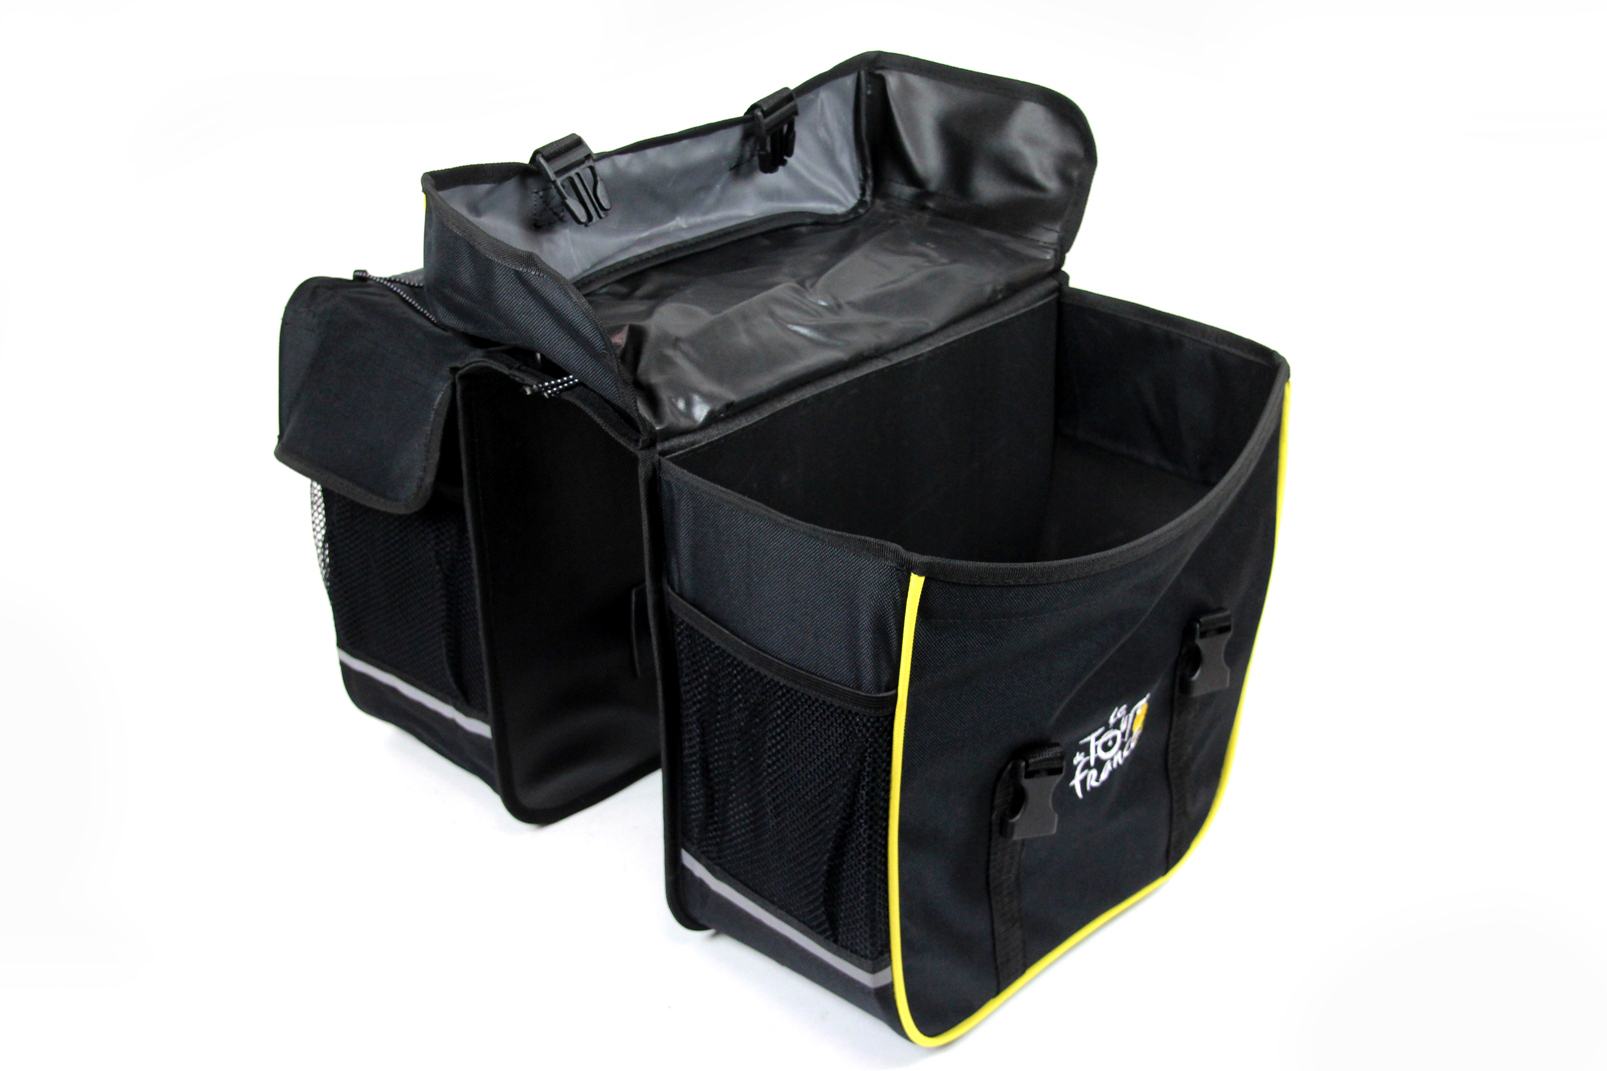 doppel fahrrad tasche packtasche tour de france. Black Bedroom Furniture Sets. Home Design Ideas